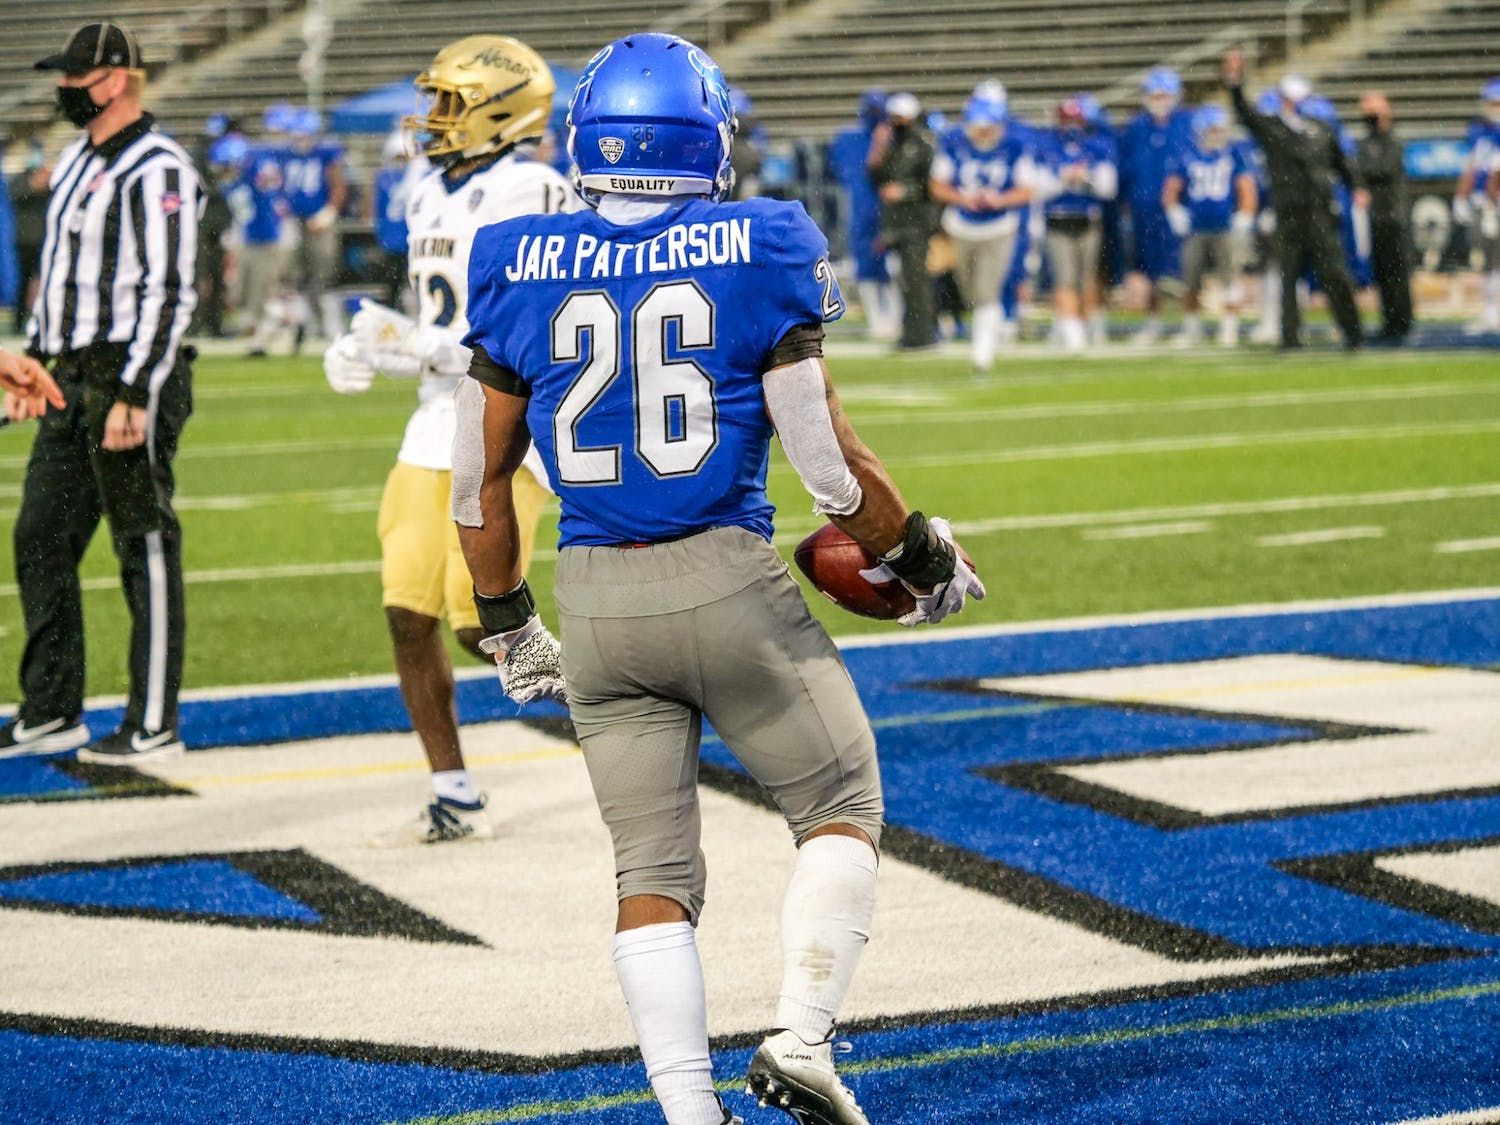 Jaret Patterson had a historic 2020 season with the Bulls, as he led the nation in rushing yards per game, at 178.